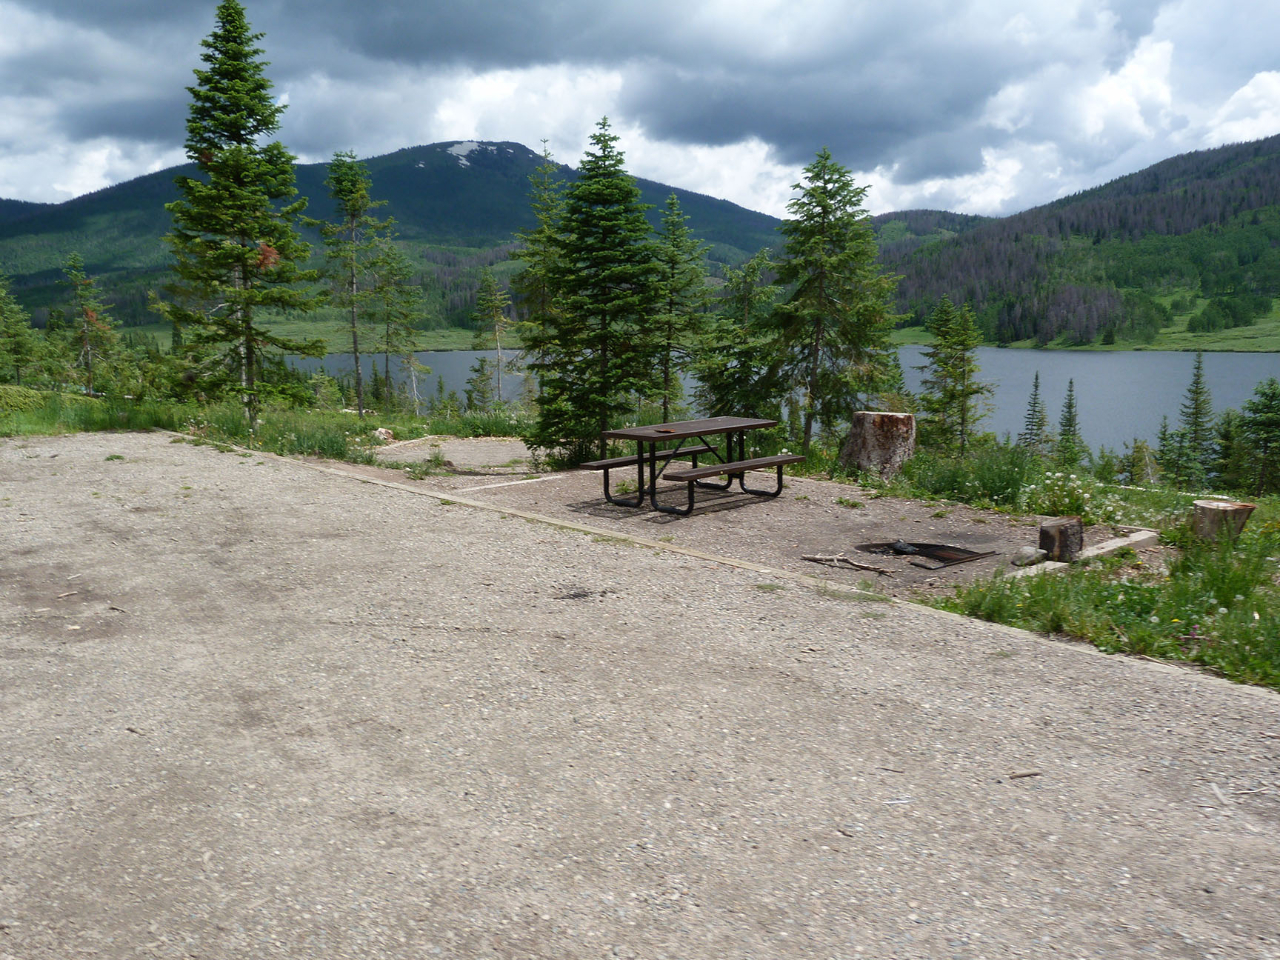 pearl-lake-state-park-campground-large-flat-parking